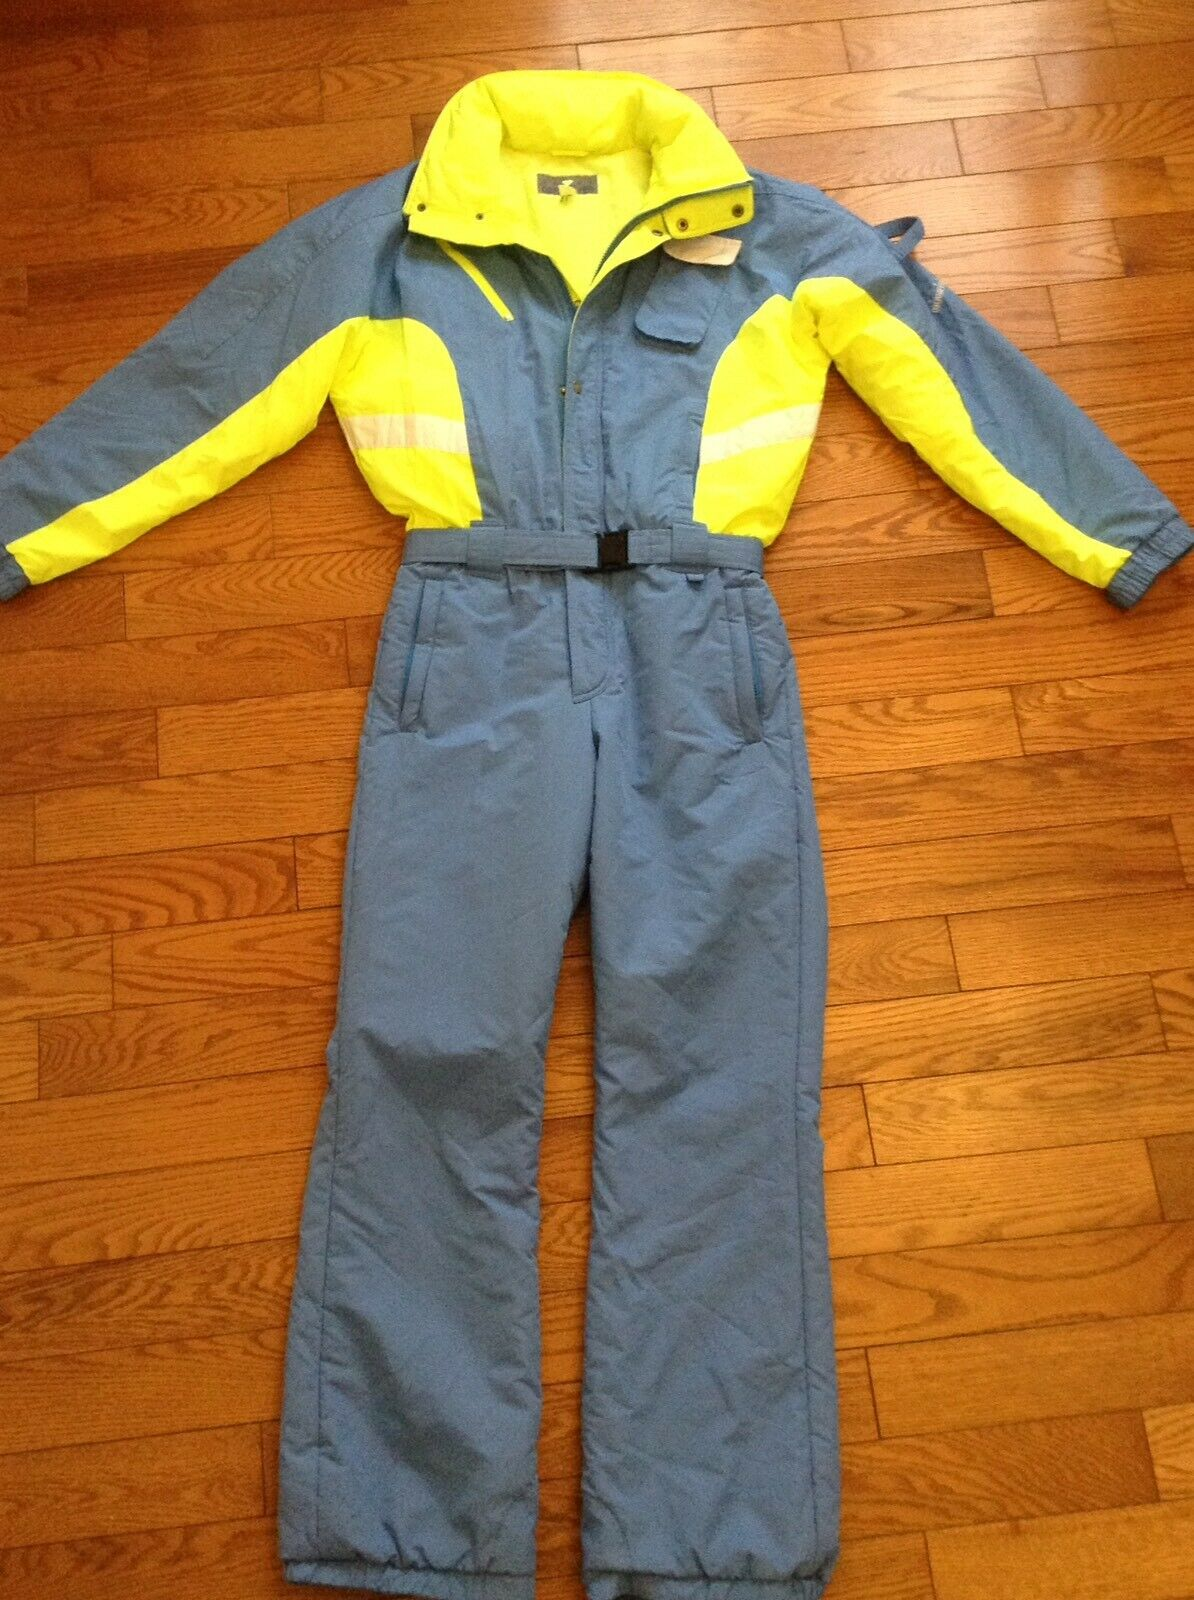 Obermeyer Sport VTG '70's Men's Sz Med Chaser  EUC Ski Snow Suit bluee Neon Yellow  lowest whole network